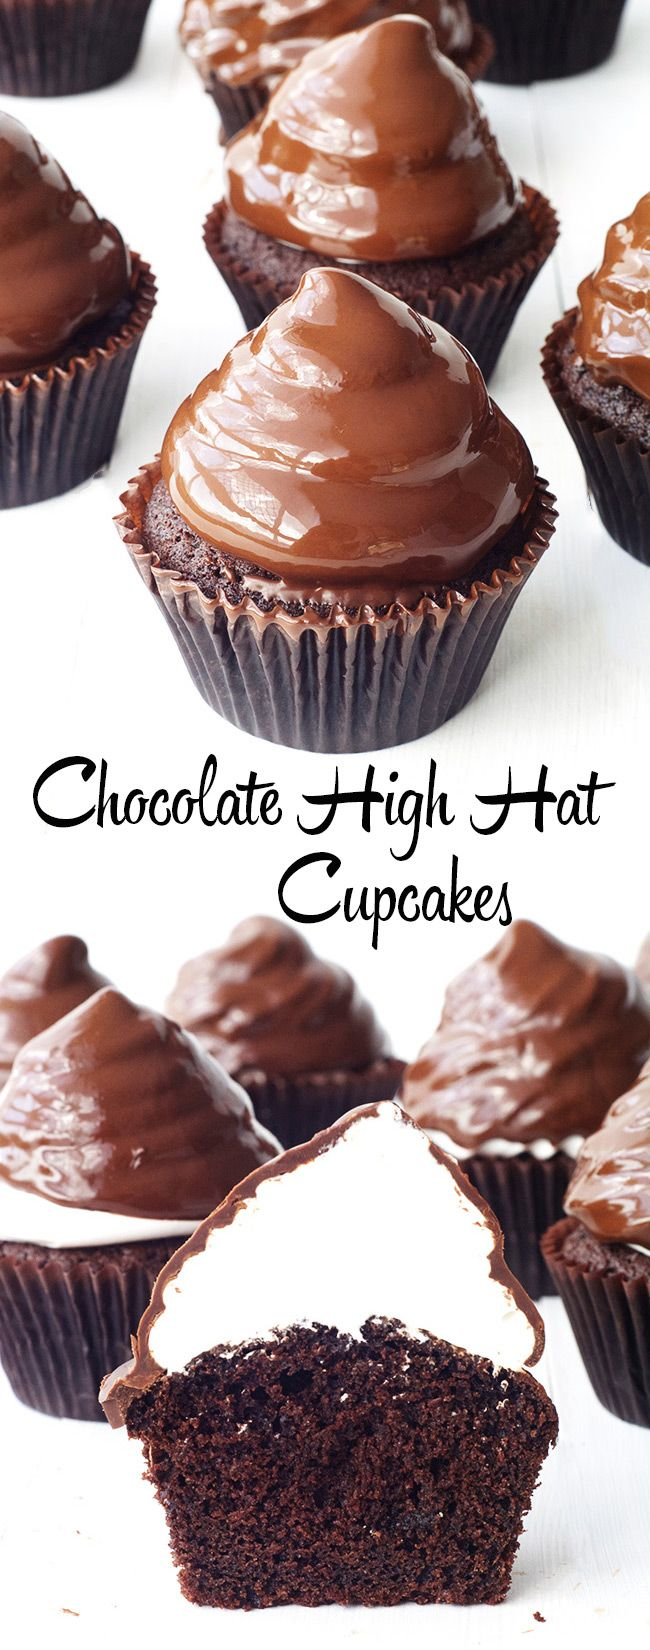 Chocolate High Hat Cupcakes with easy homemade marshmallow frosting from Sweetest Menu